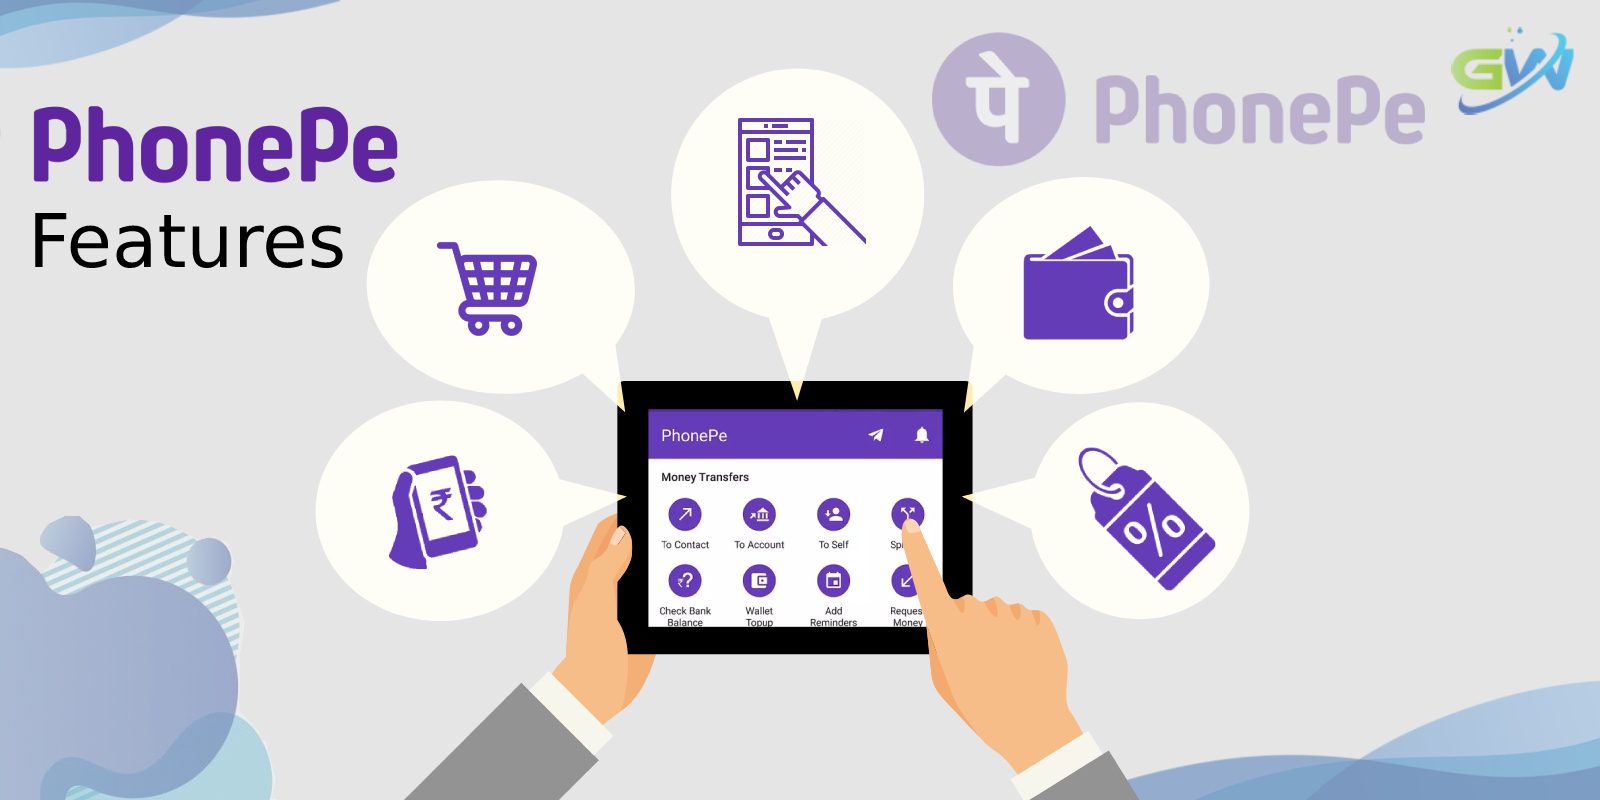 phonepe features